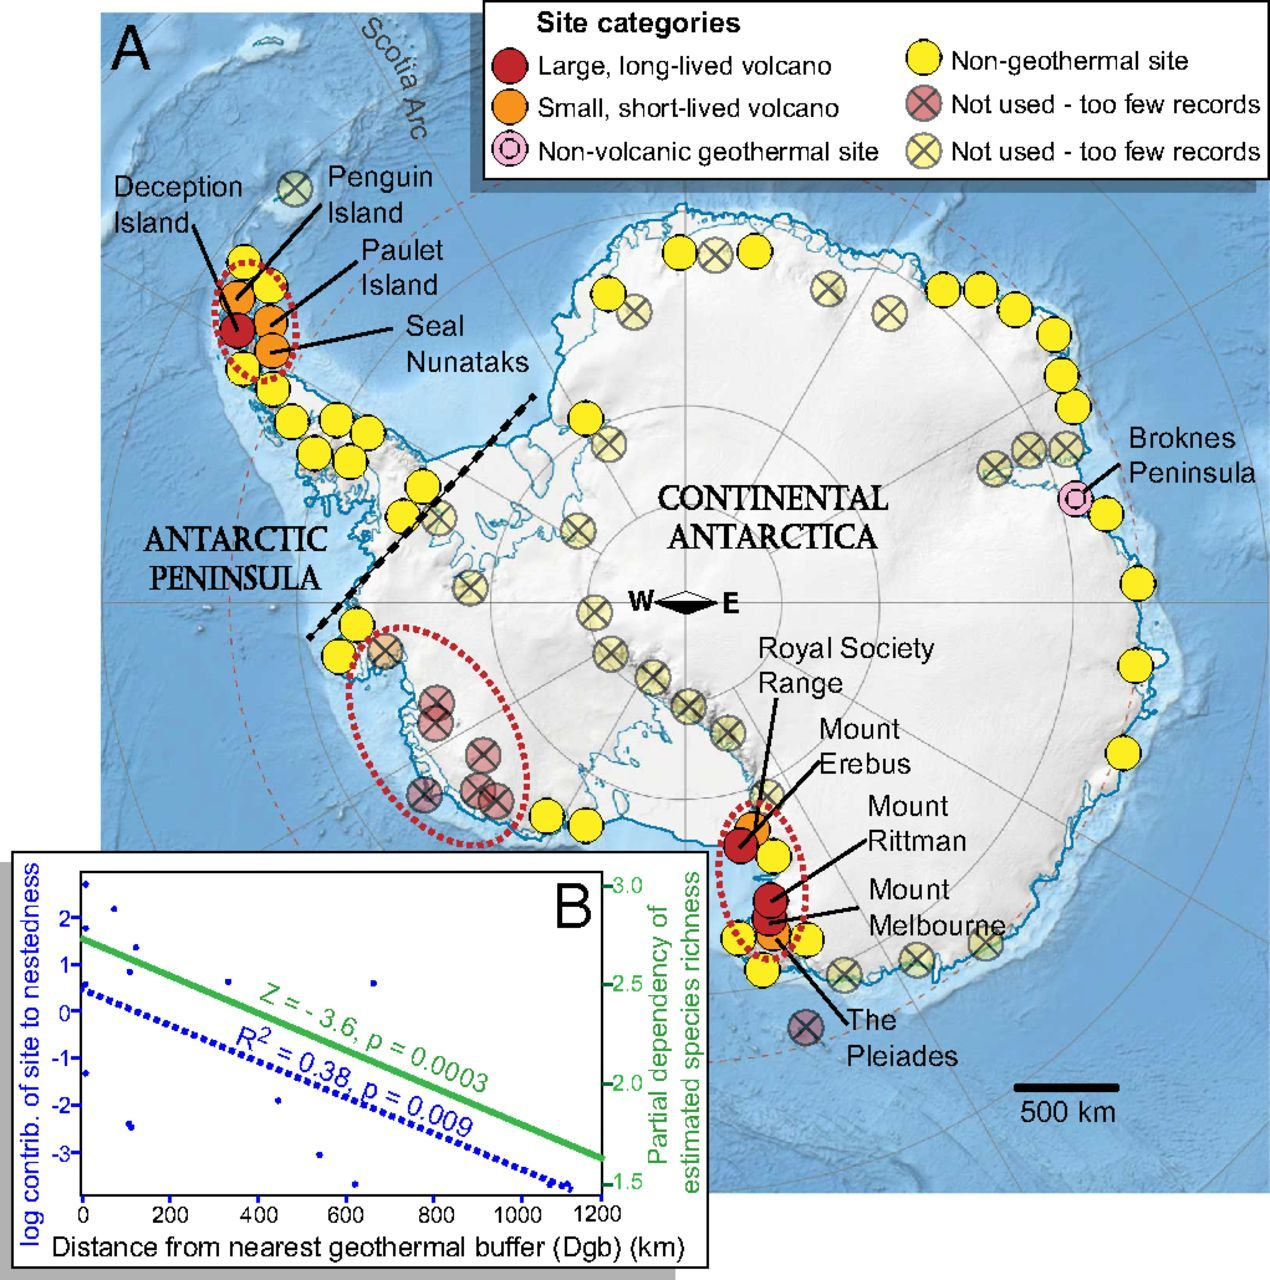 Volcanoes And Other Geothermal Sites In Antarctica By BAS Map - Where is antarctica on the map